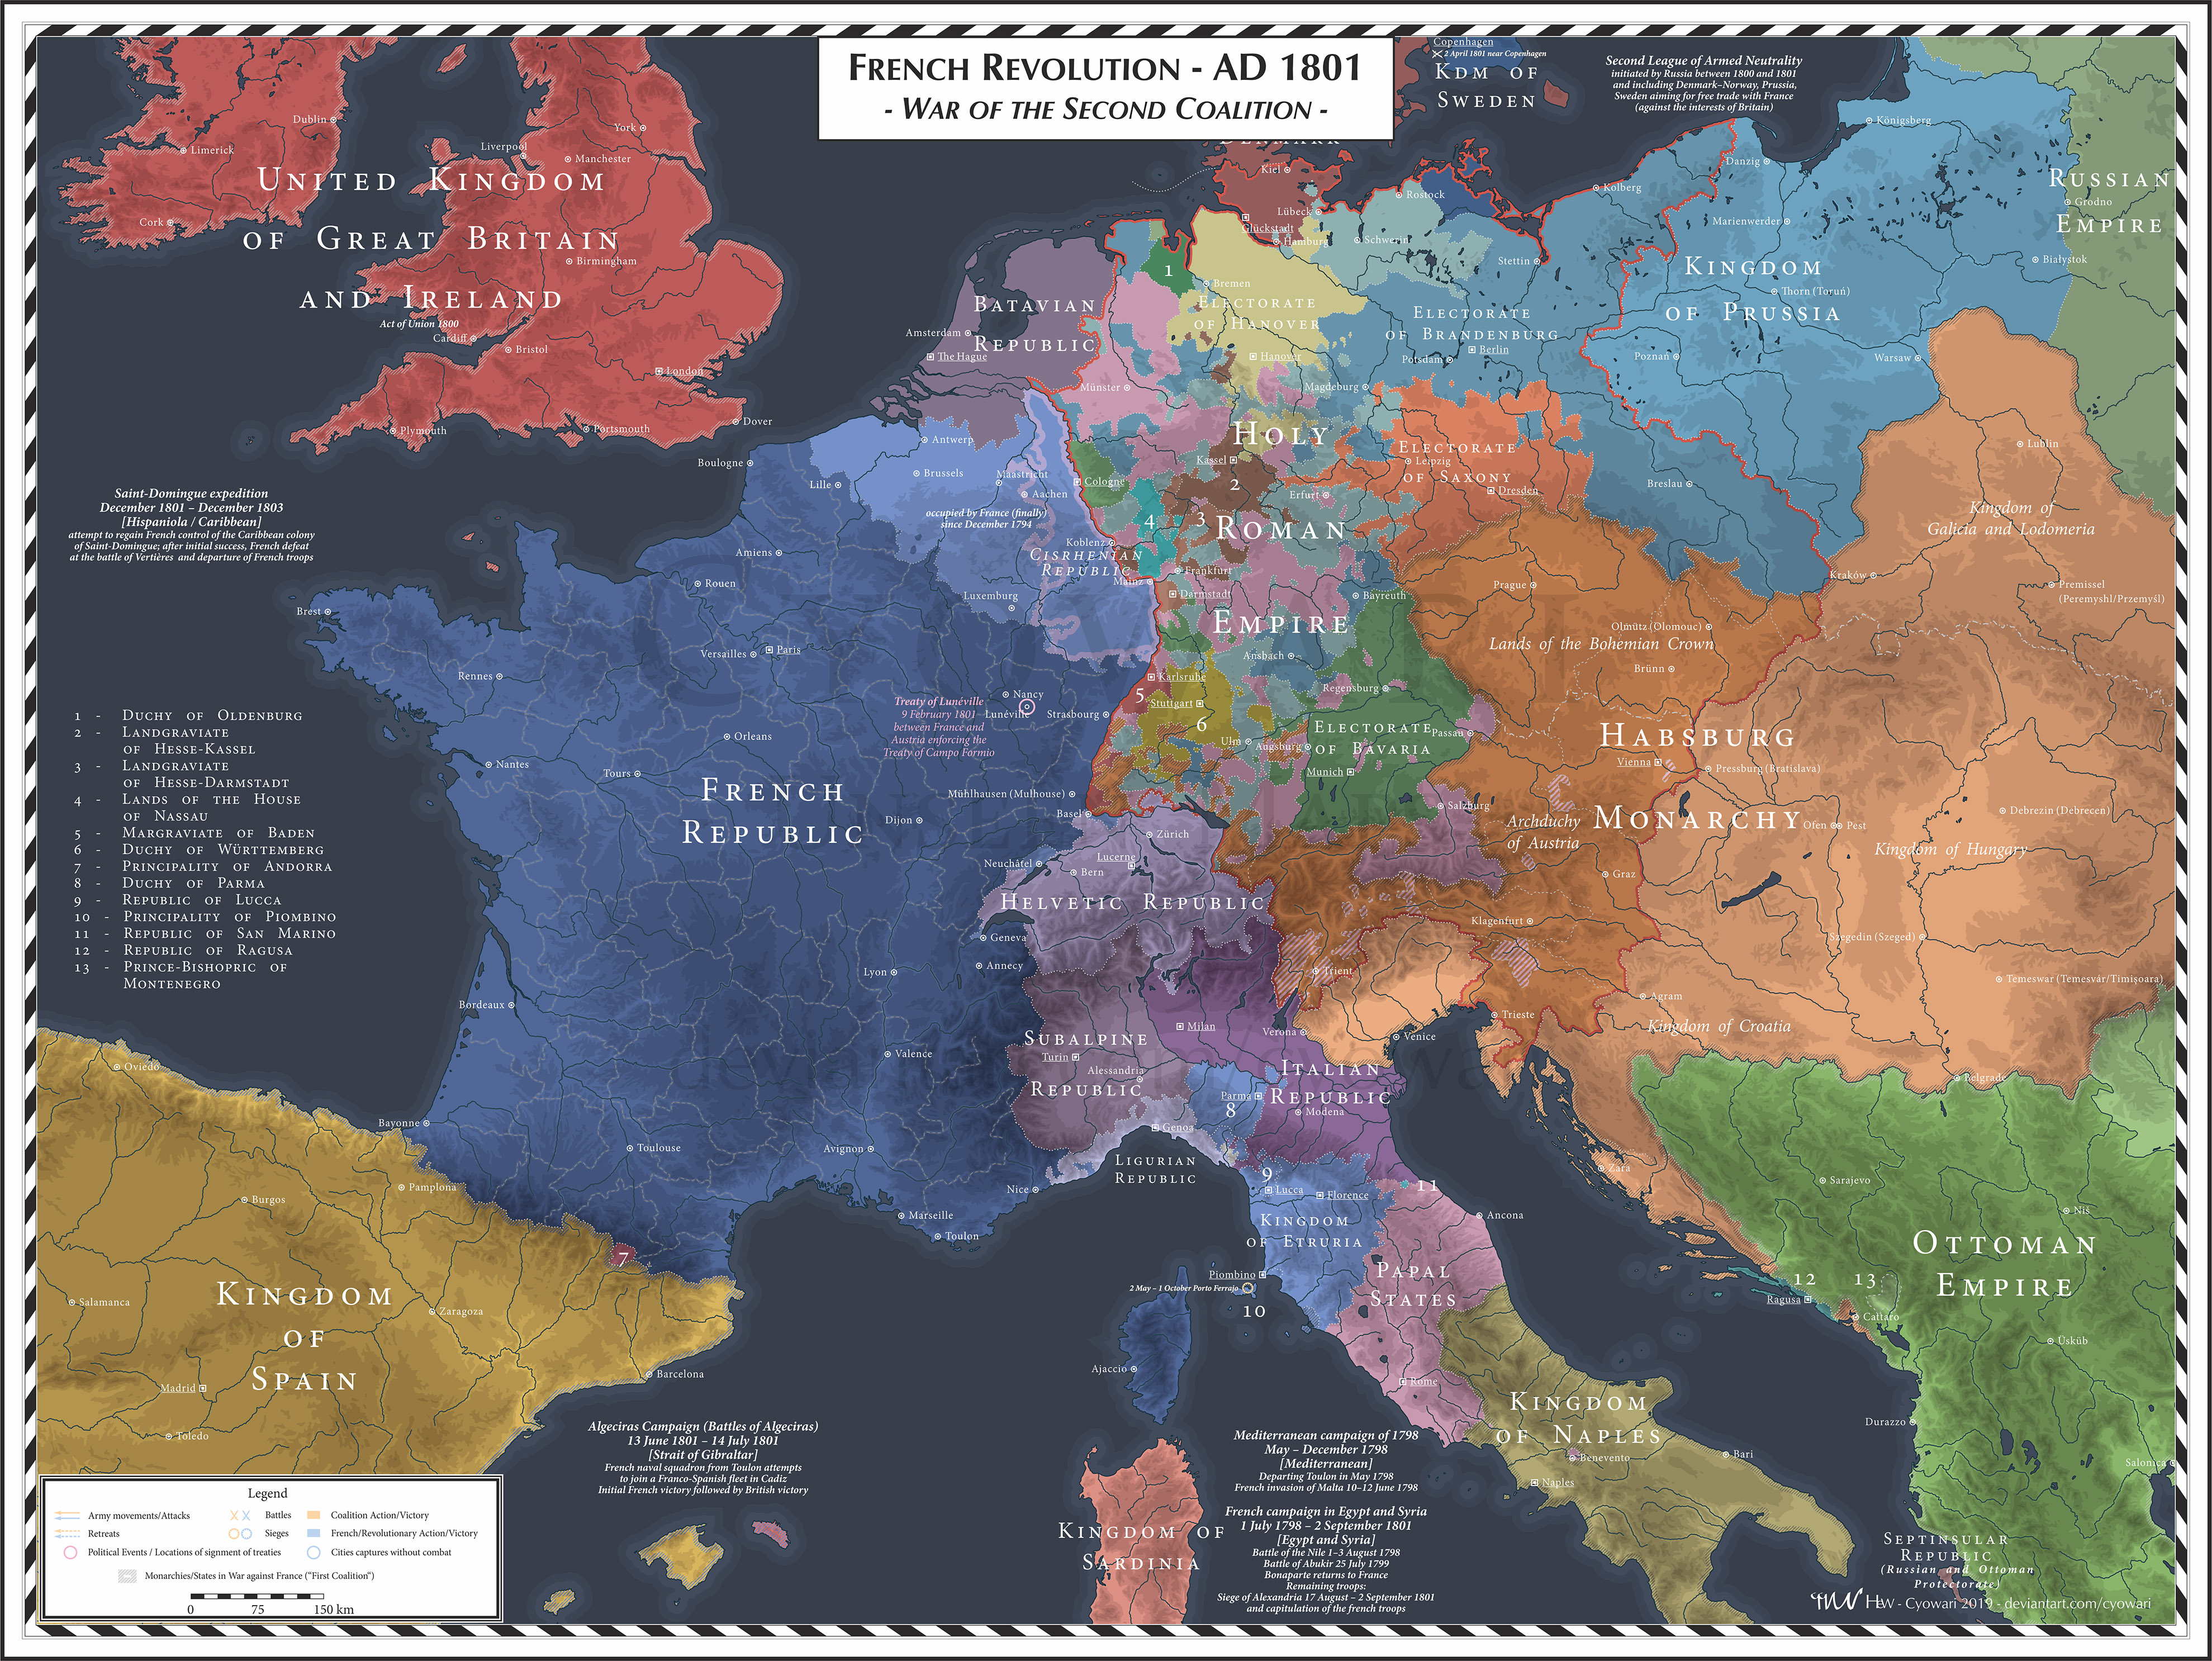 French Revolution - 1801 - Second Coalition